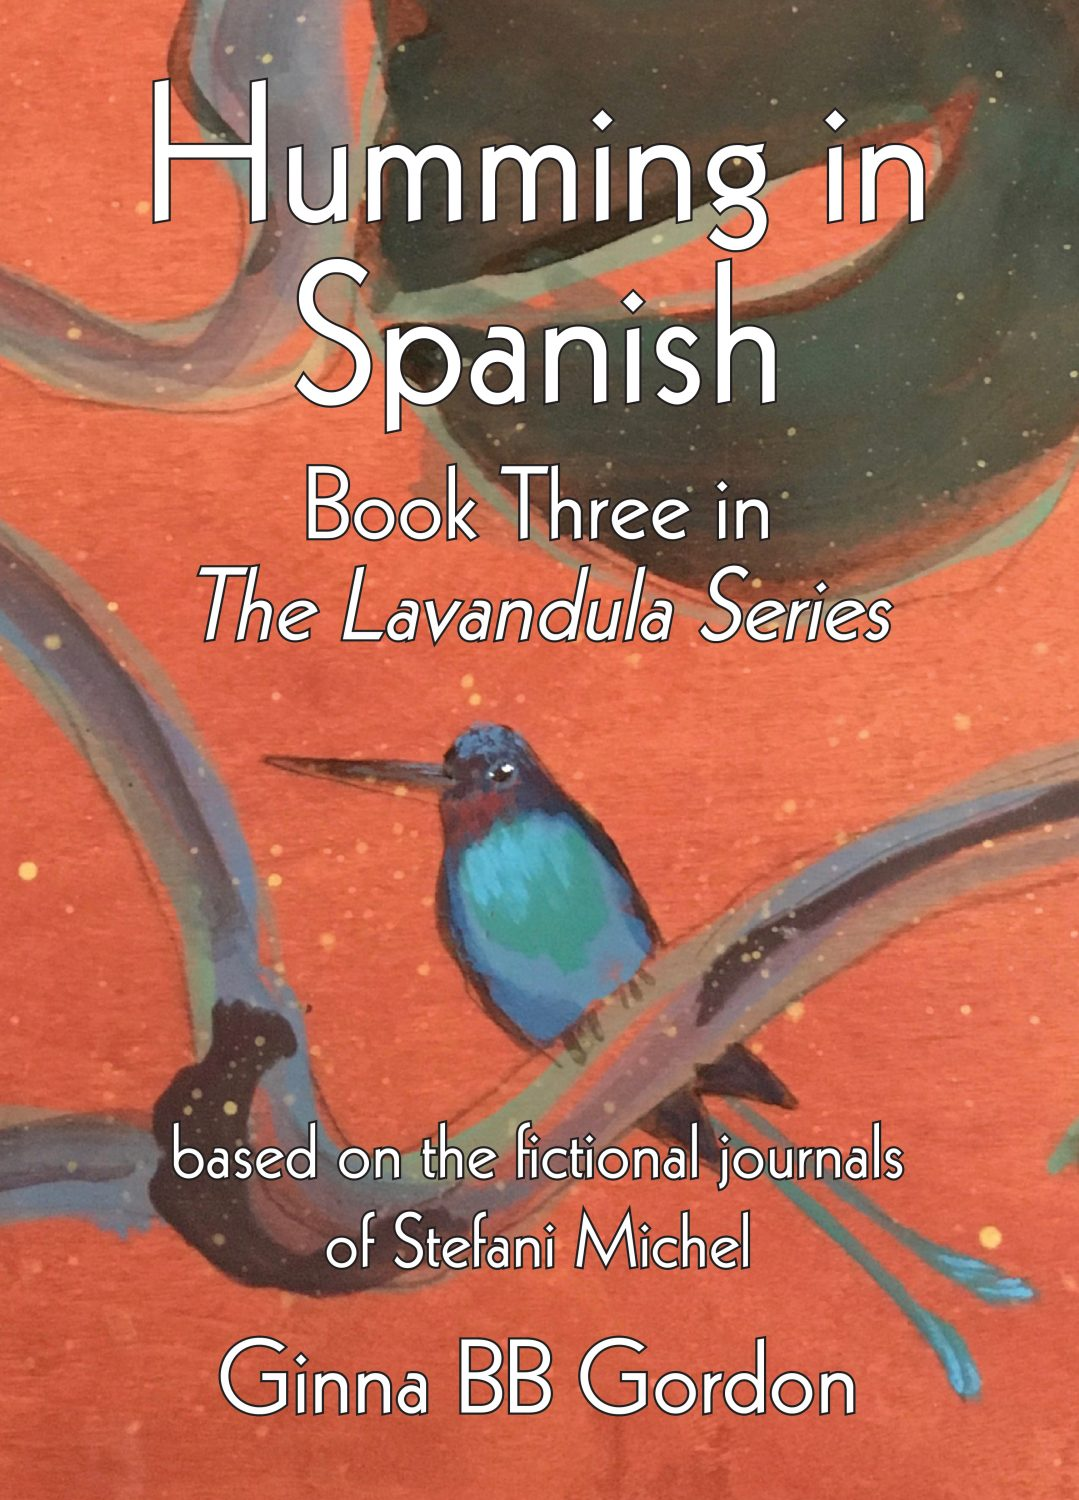 Humming in Spanish, cover of book by Ginna BB Gordon